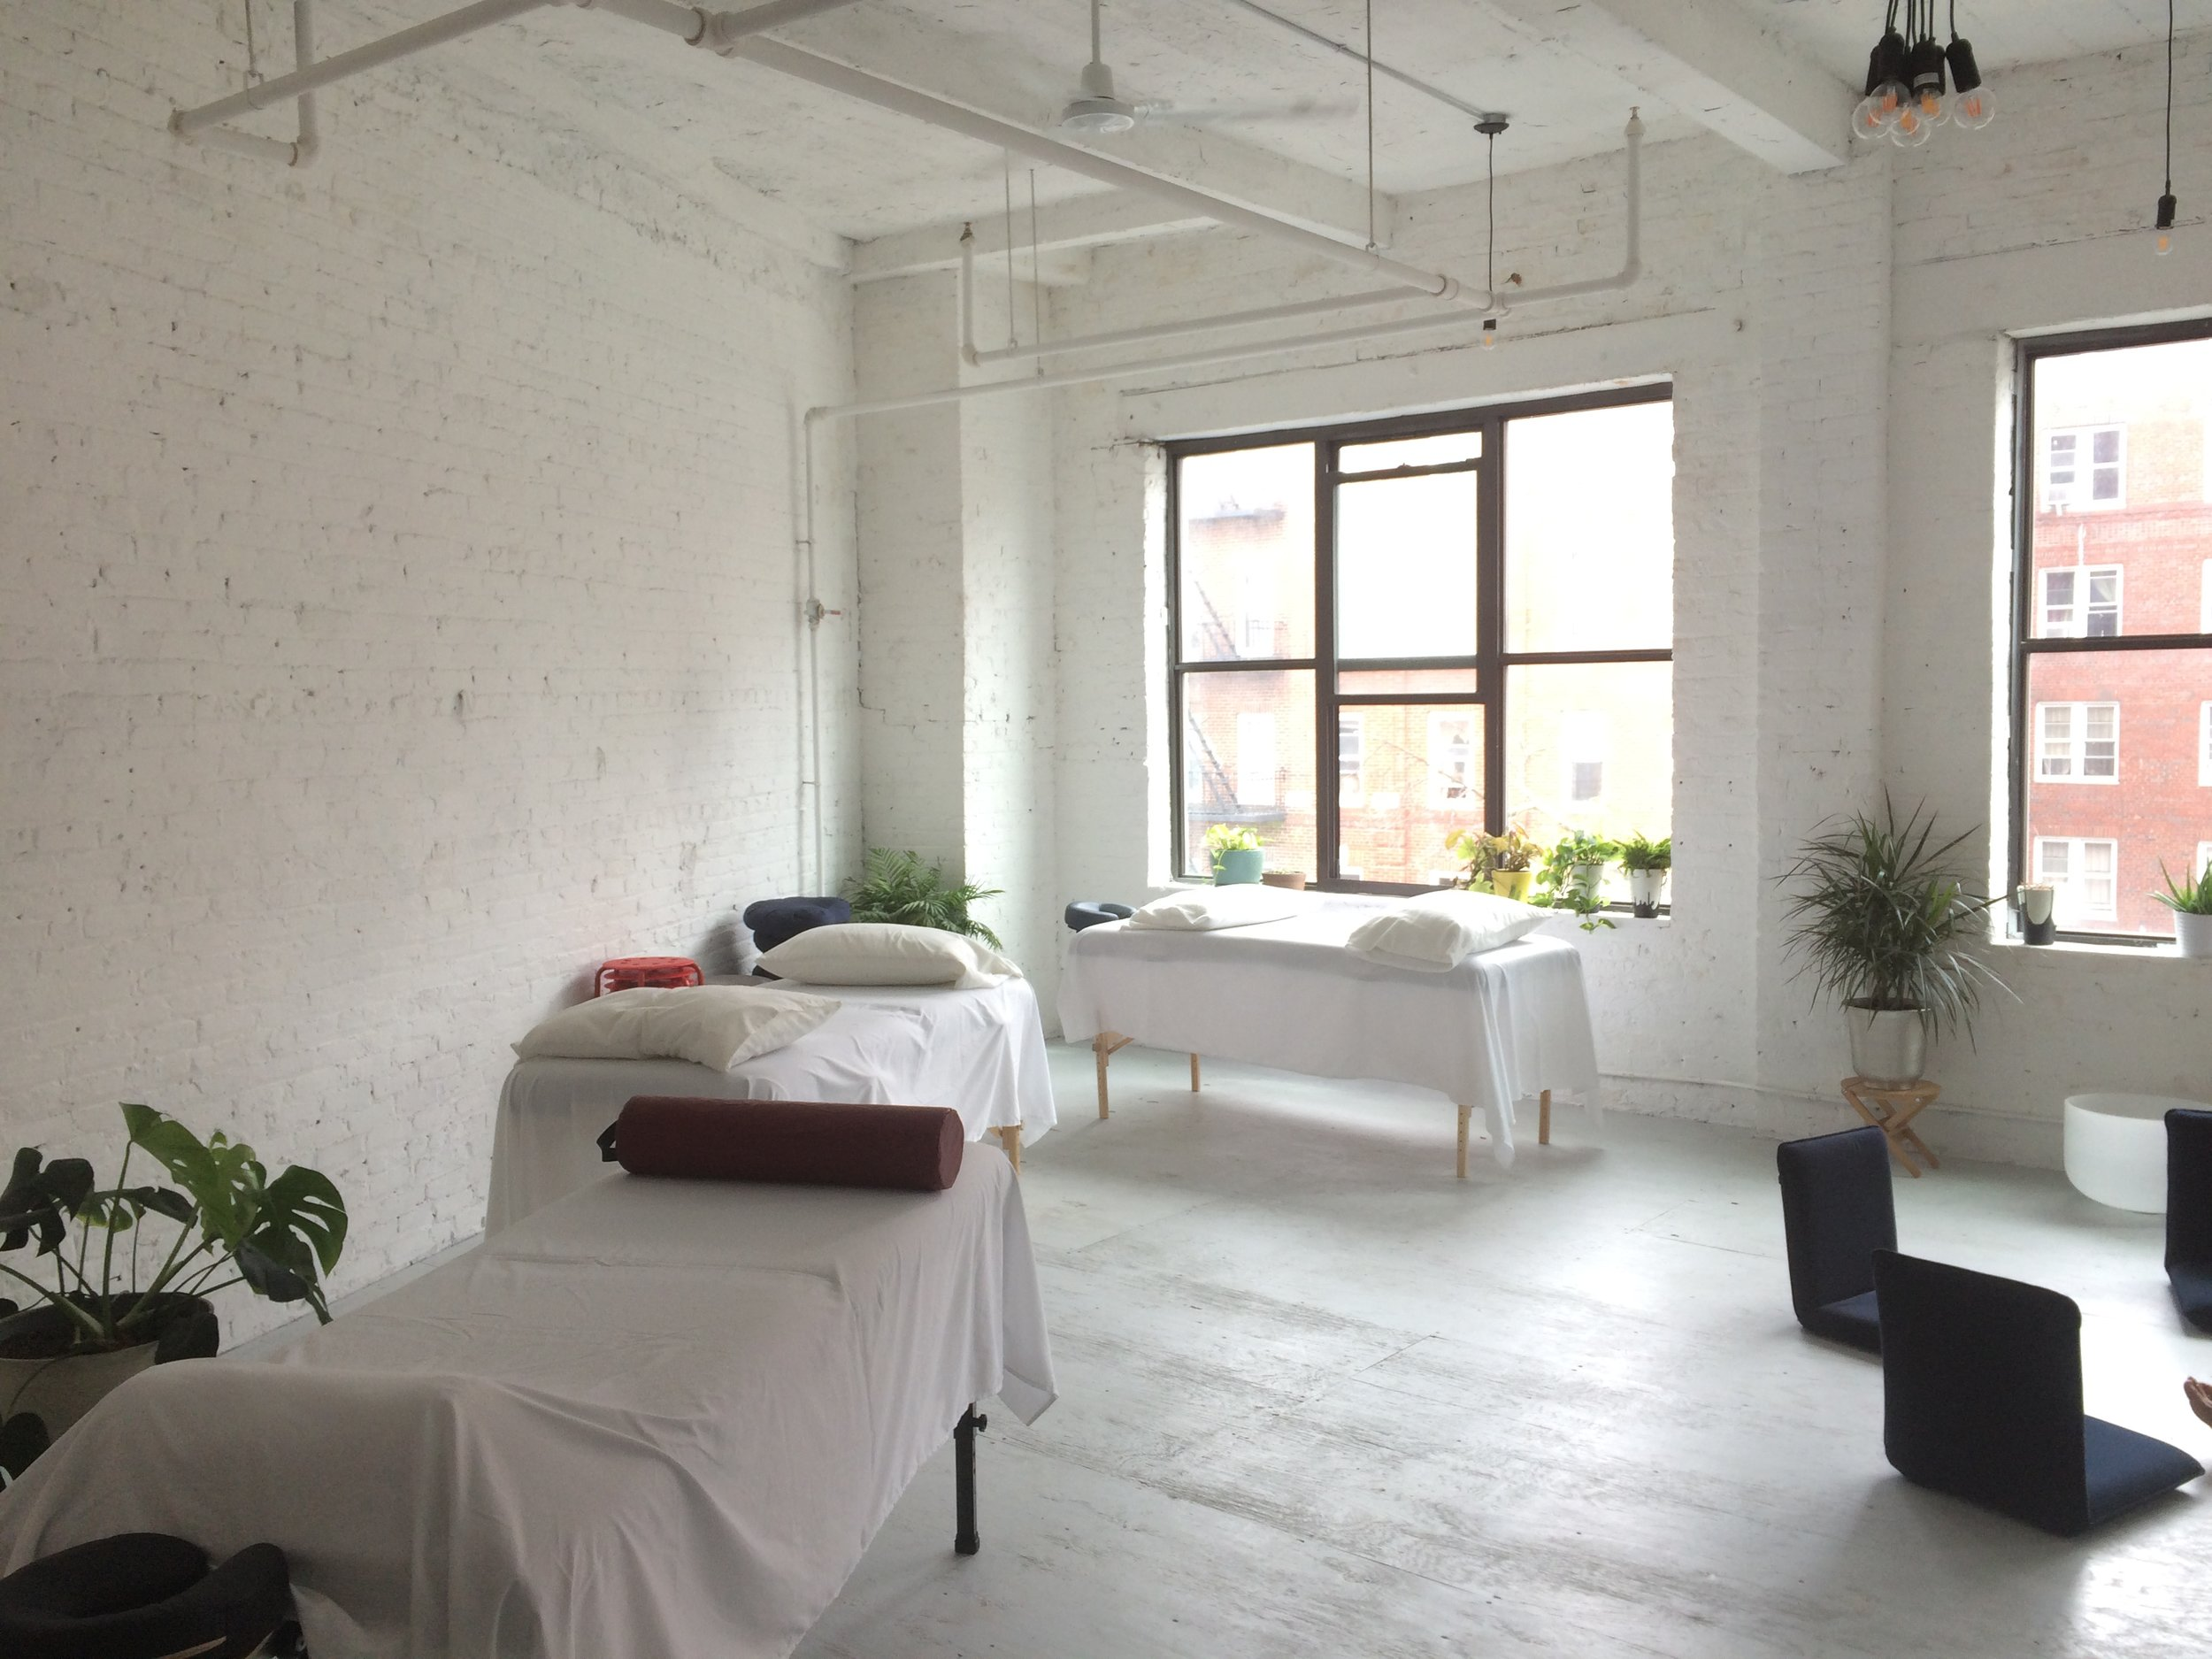 Lefferts Community Acupuncture